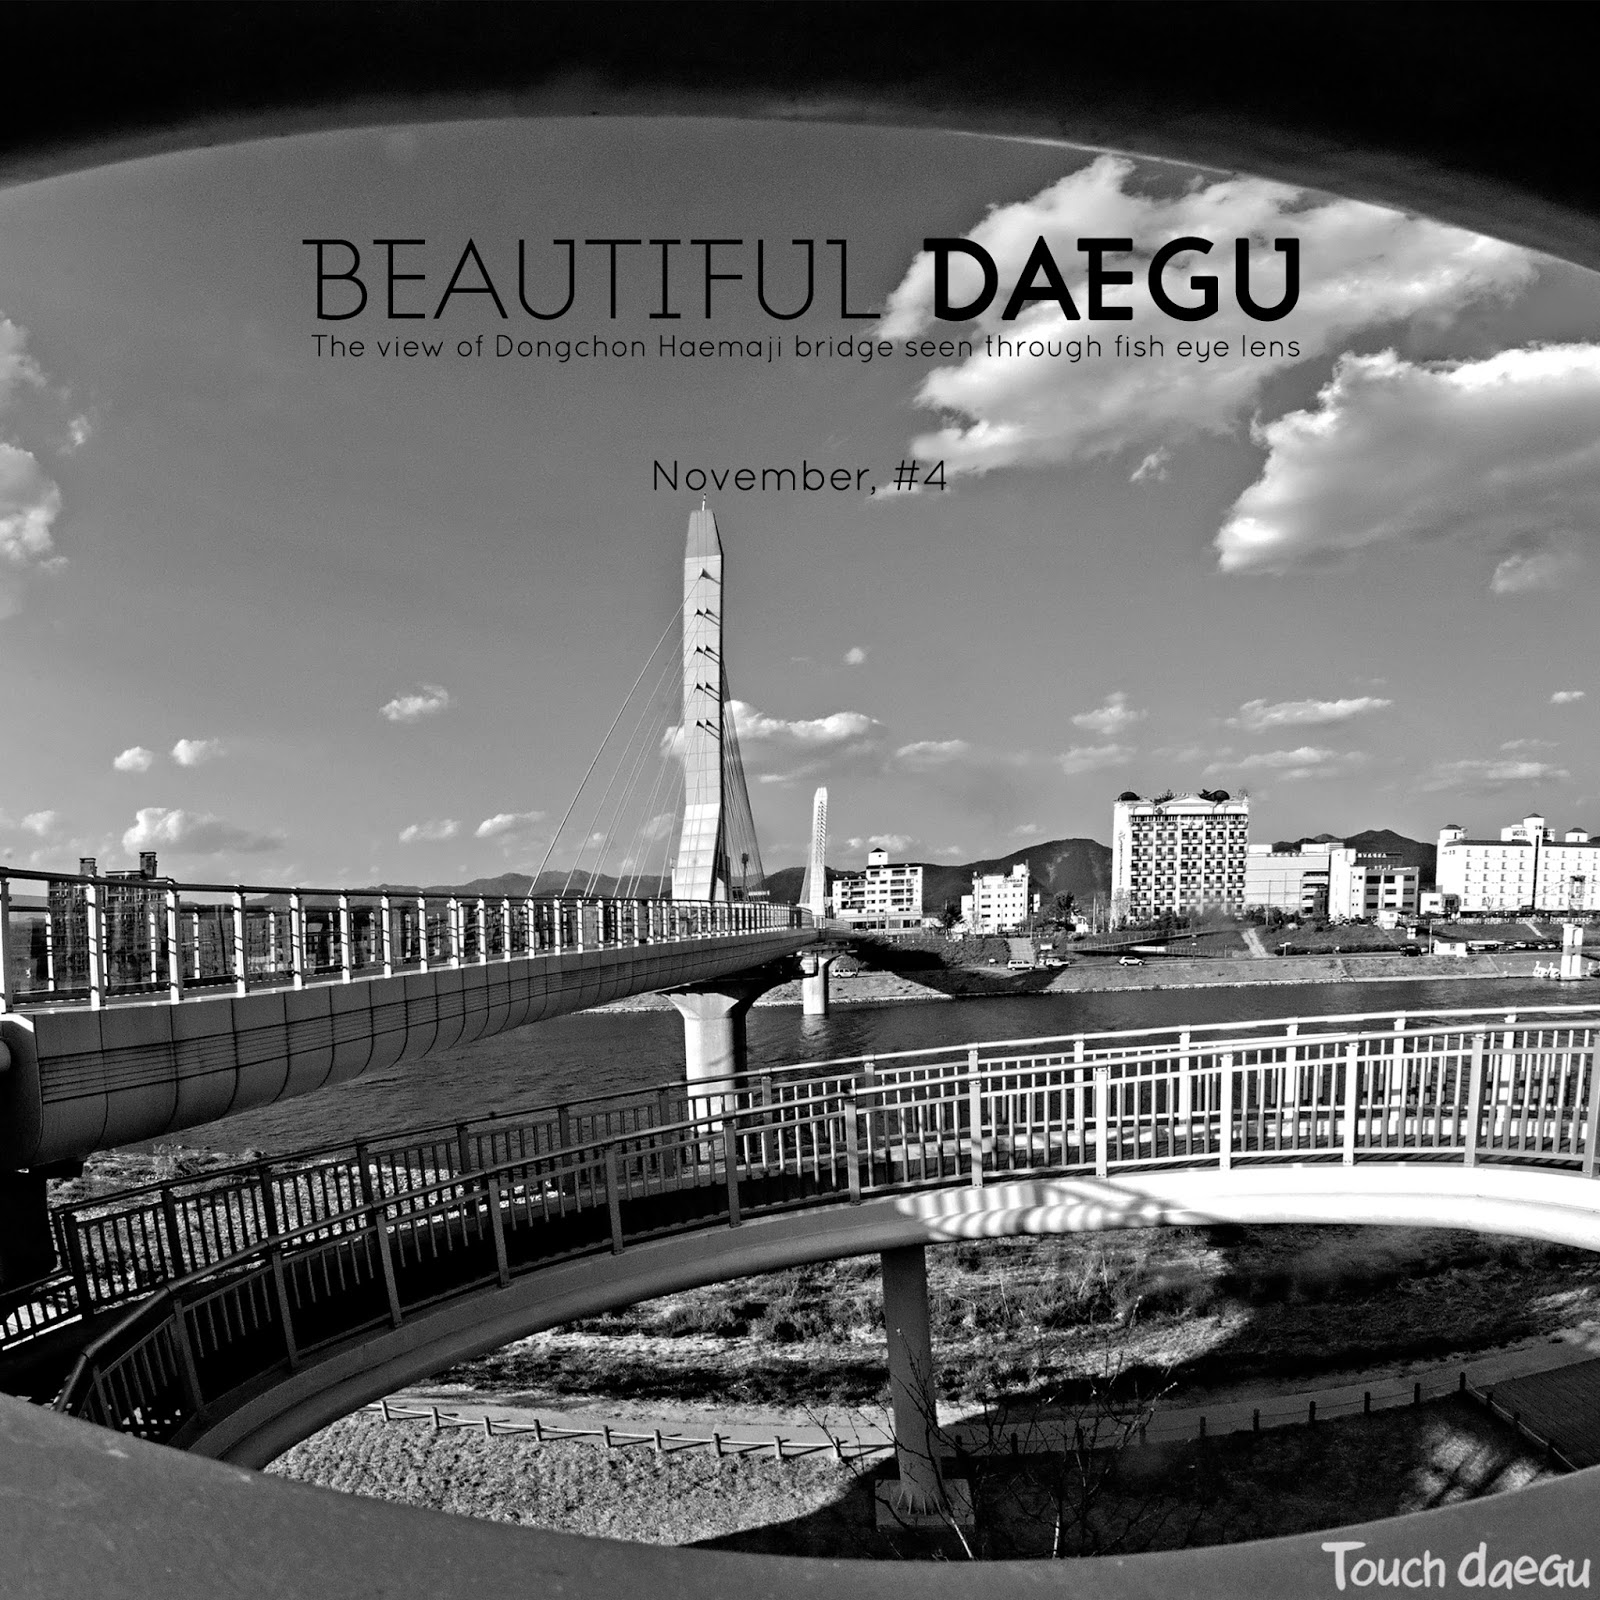 The view of Dongchon Haemaji bridge seen through fish eye lens